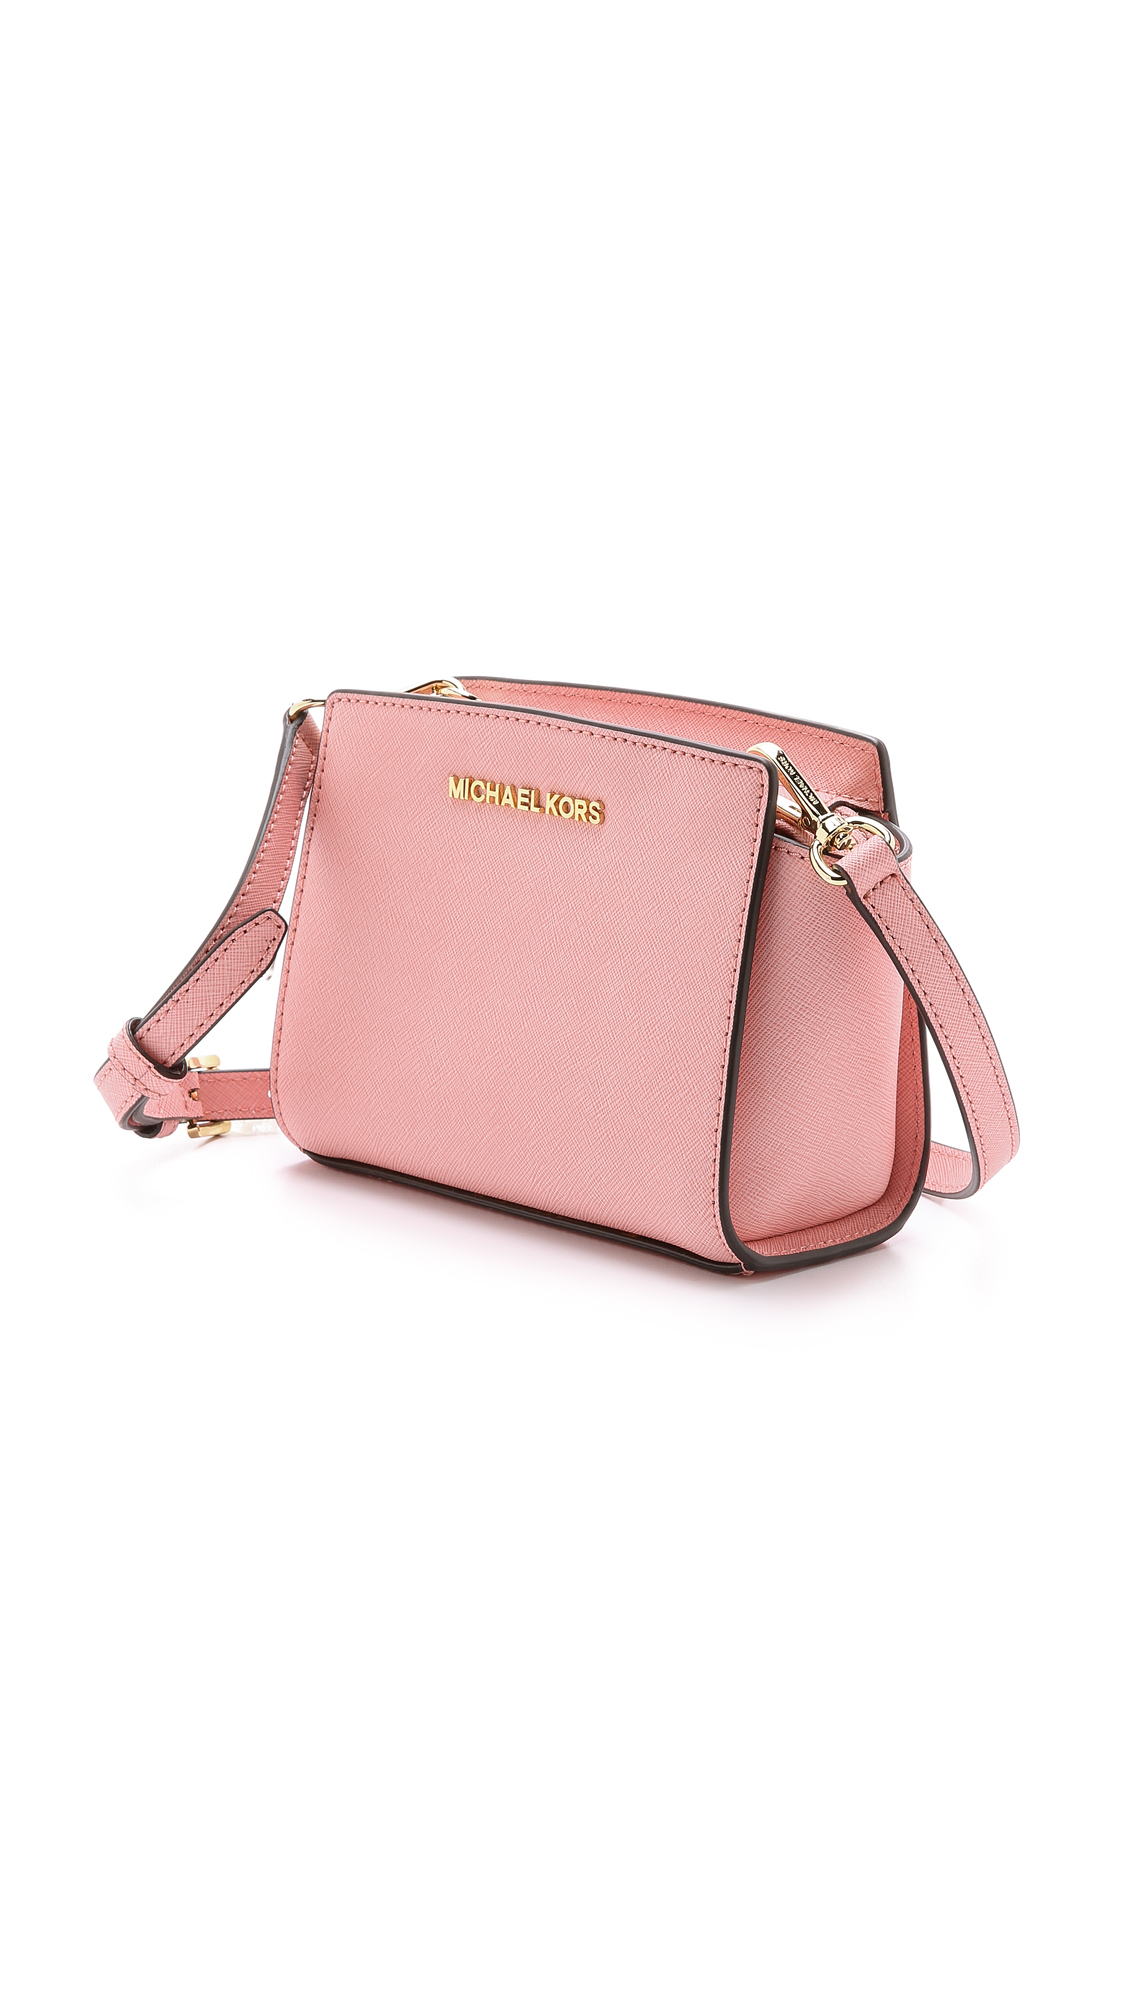 michael michael kors selma mini messenger bag pale pink in pink lyst. Black Bedroom Furniture Sets. Home Design Ideas